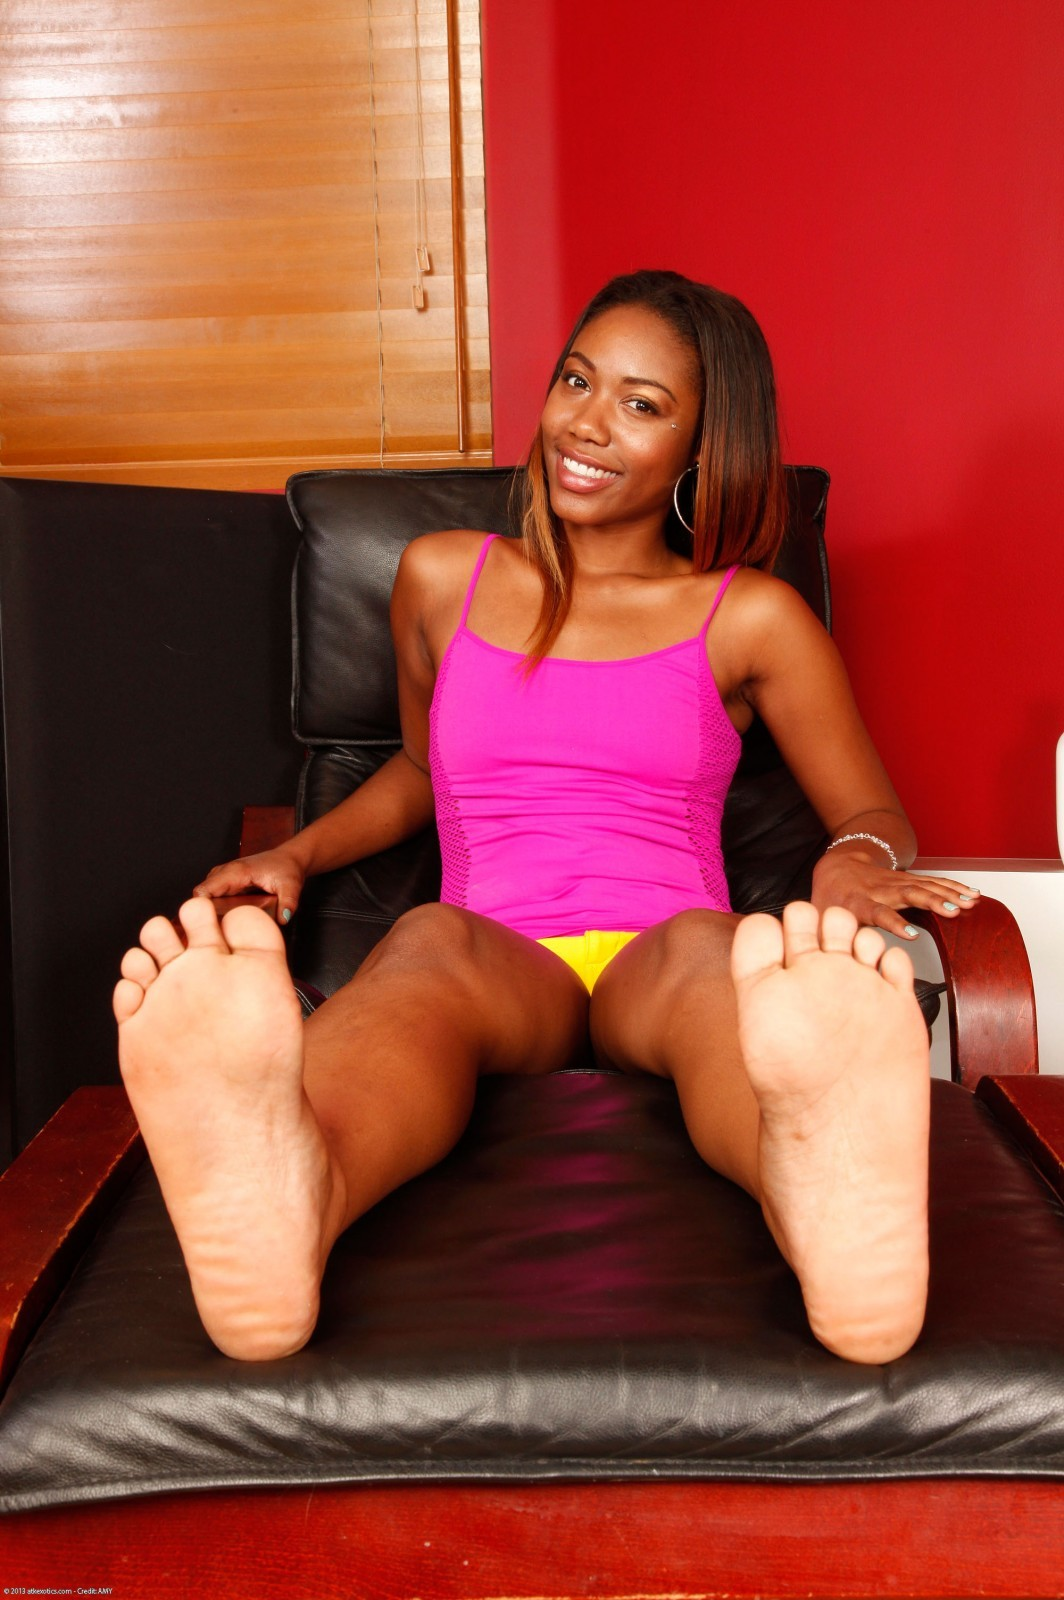 Chanell heart feet